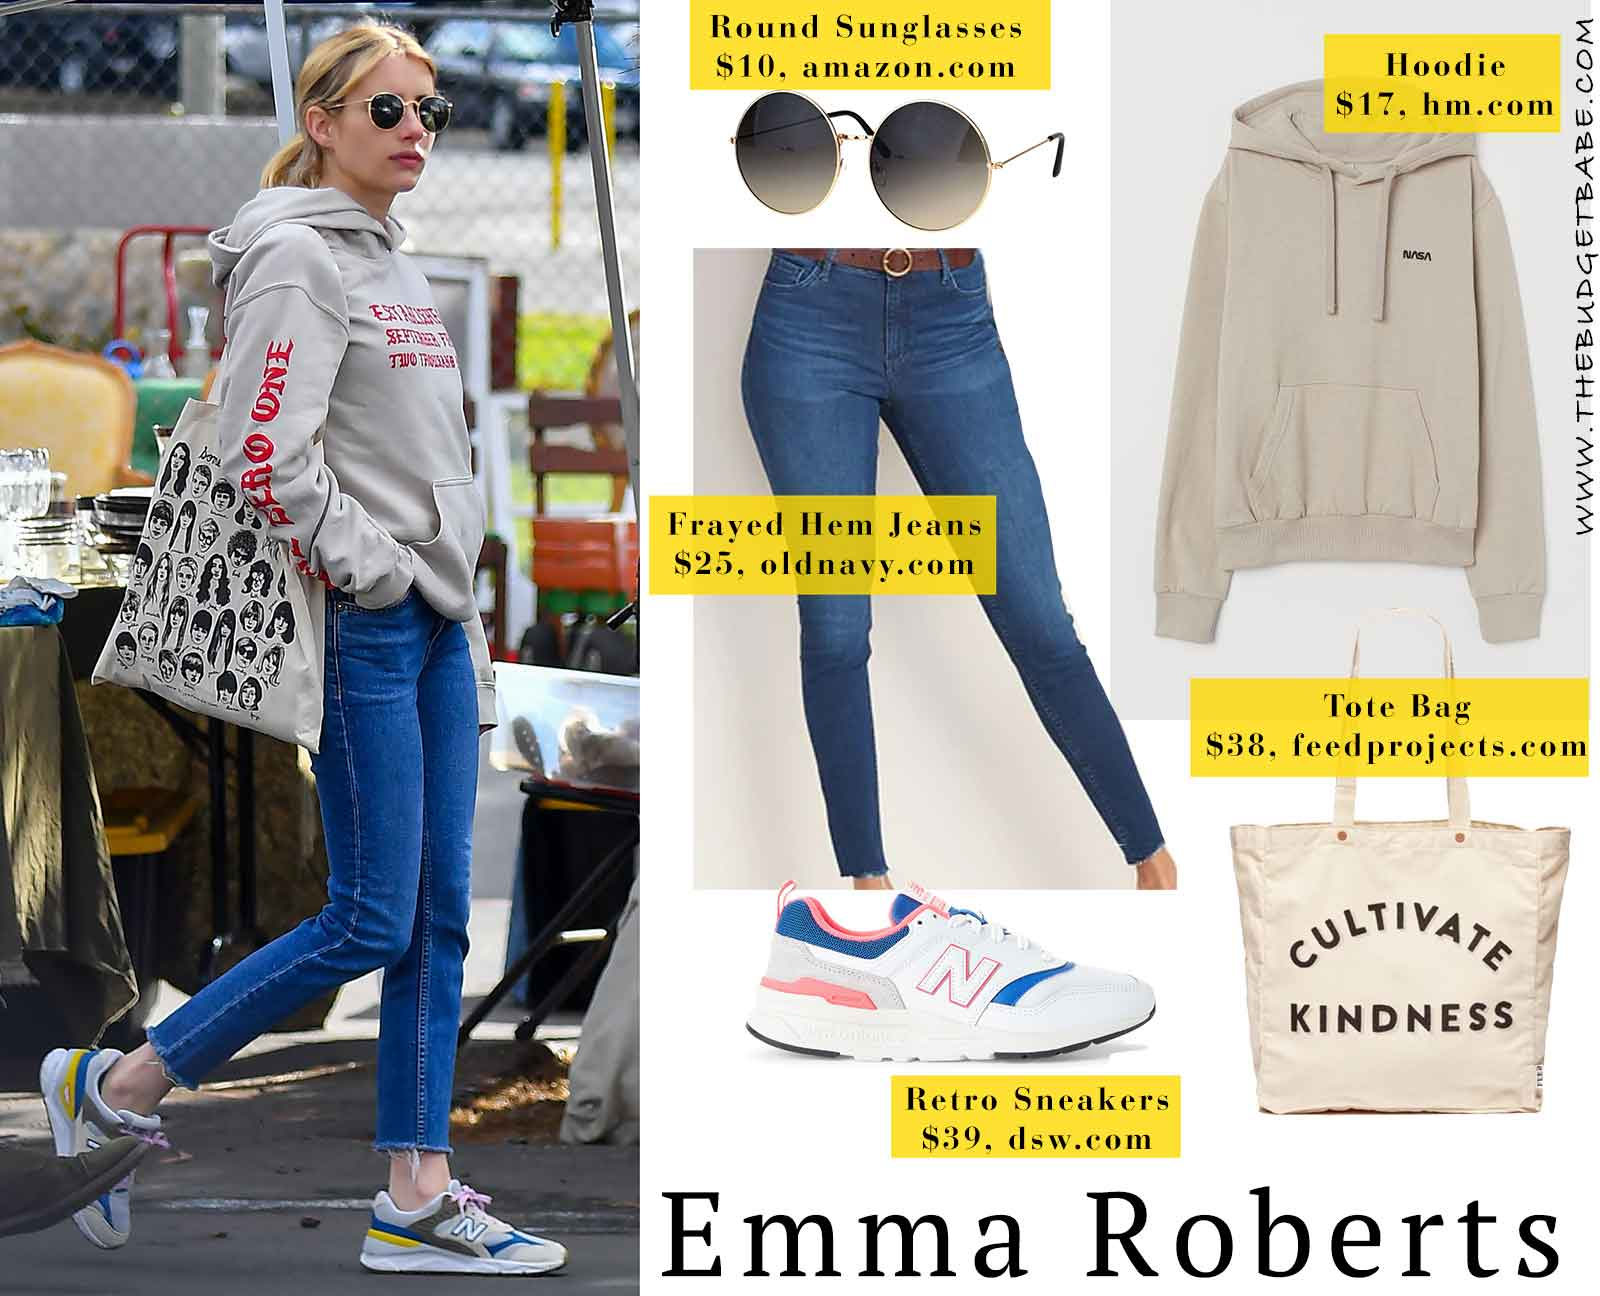 Emma Roberts One Nine Zero hoodie and New Balance sneakers